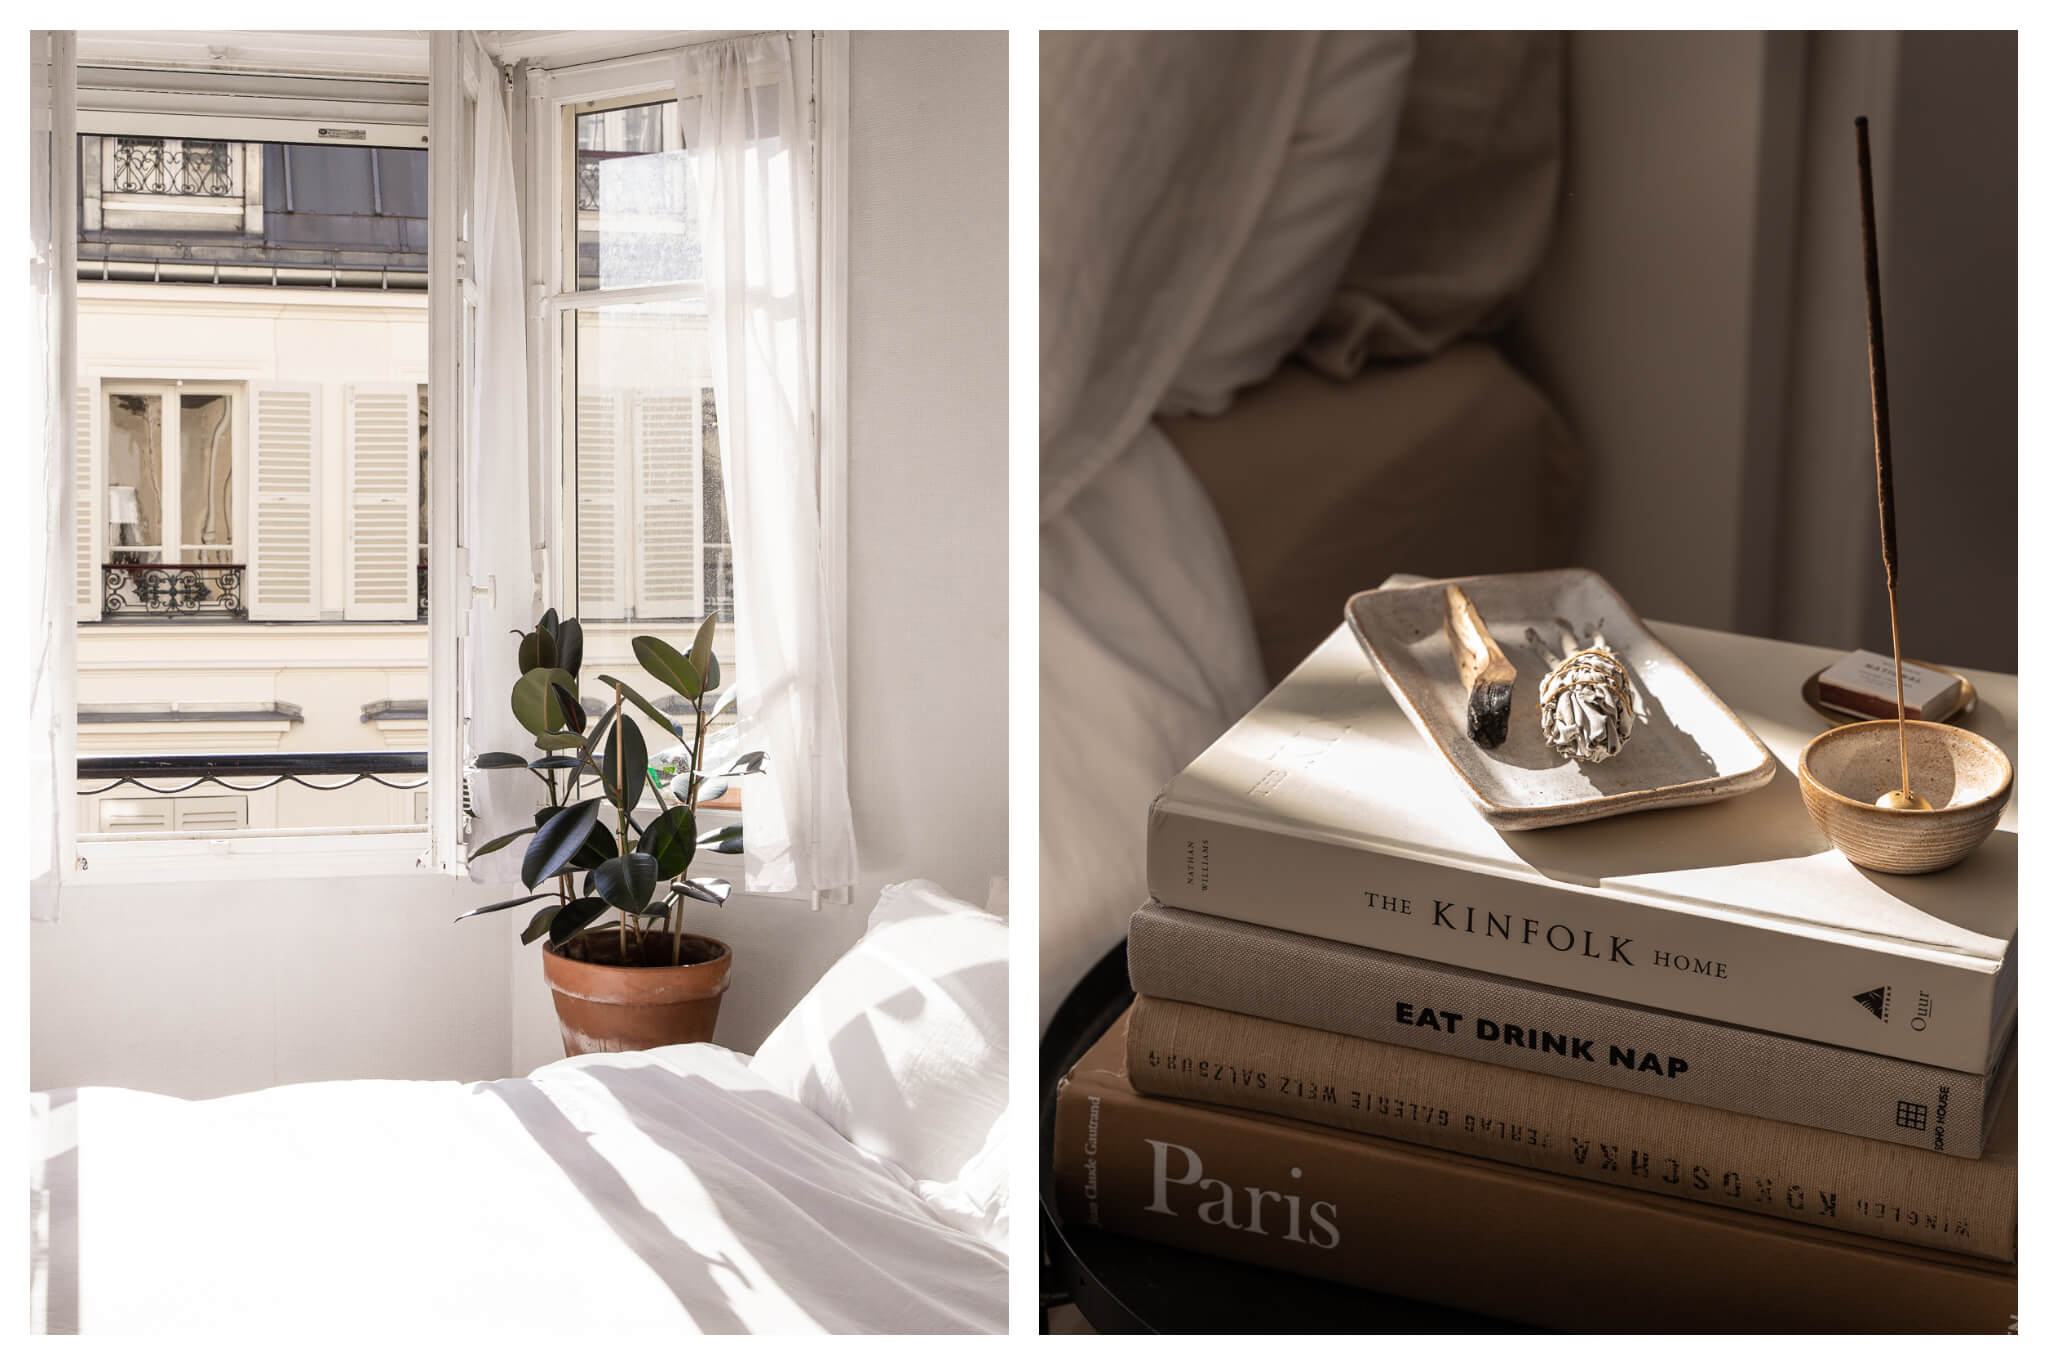 Left: Light comes into Roxanne's apartment on a sunny day onto her white bedspread, a plant sits next to her window which opens out to a view of a Parisian apartment, Right: incense sits atop a stack of books, including The Kinfolk Home and Eat Drink Nap.